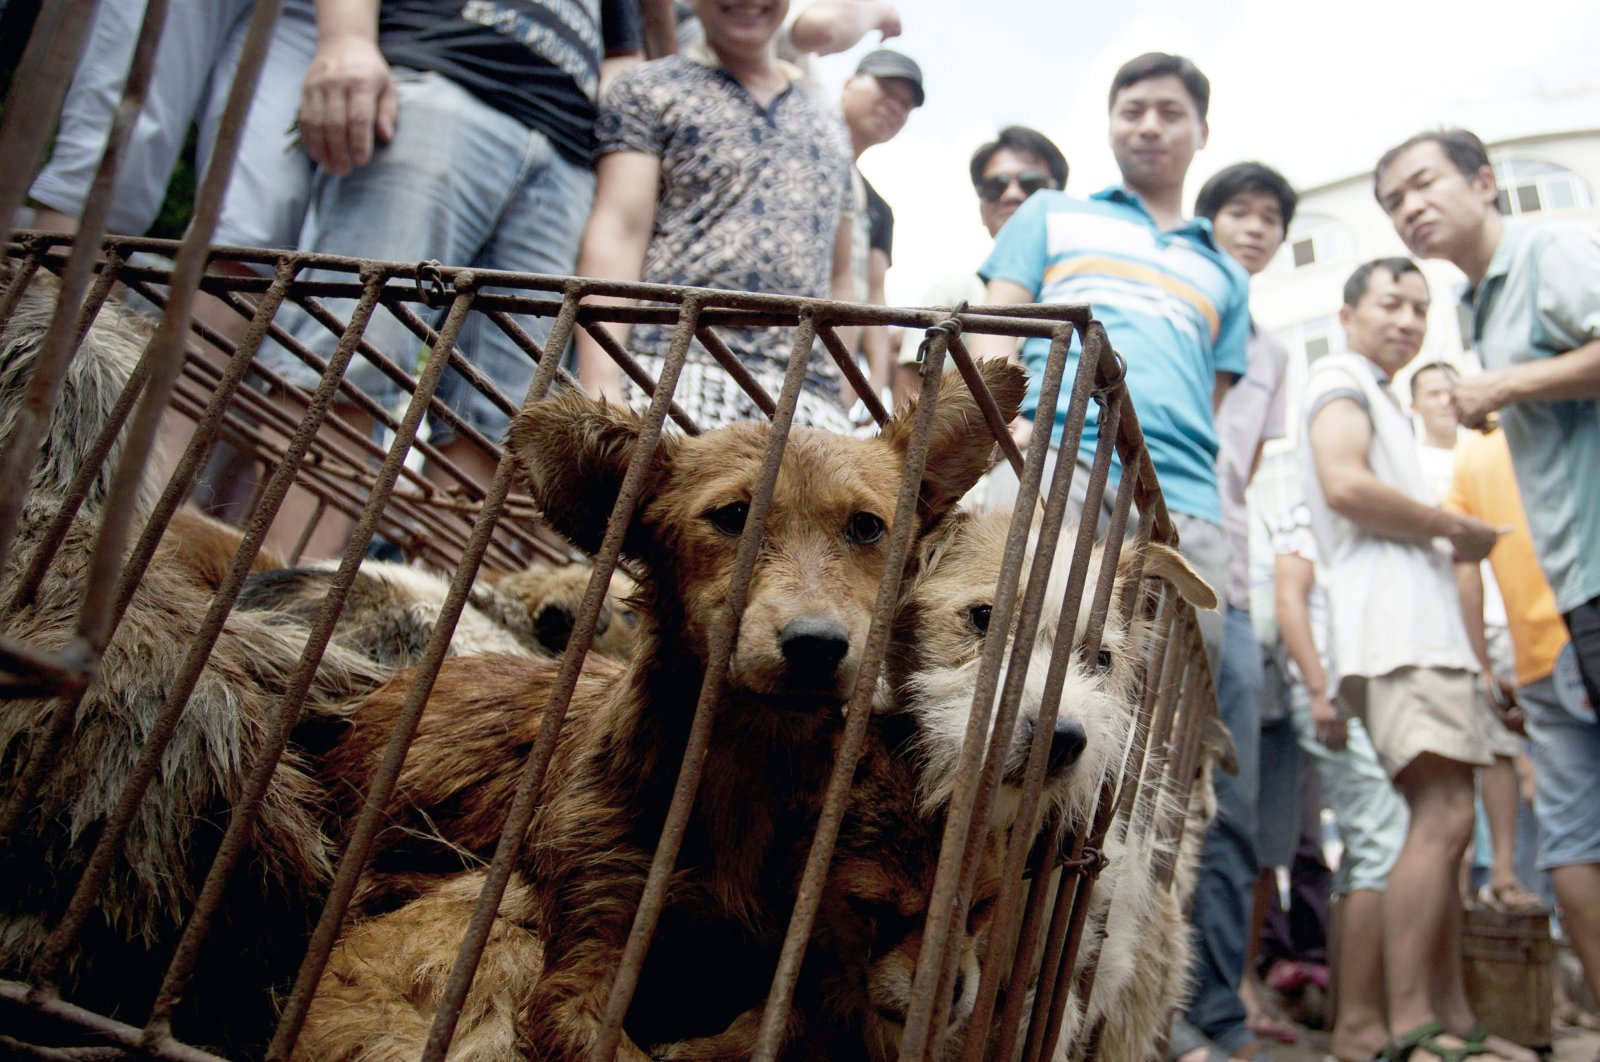 In this June 21, 2015 file photo, dogs in cages are sold by vendors at a market during a dog meat festival in Yulin in South China's Guangxi Zhuang autonomous region. (AP Photo)